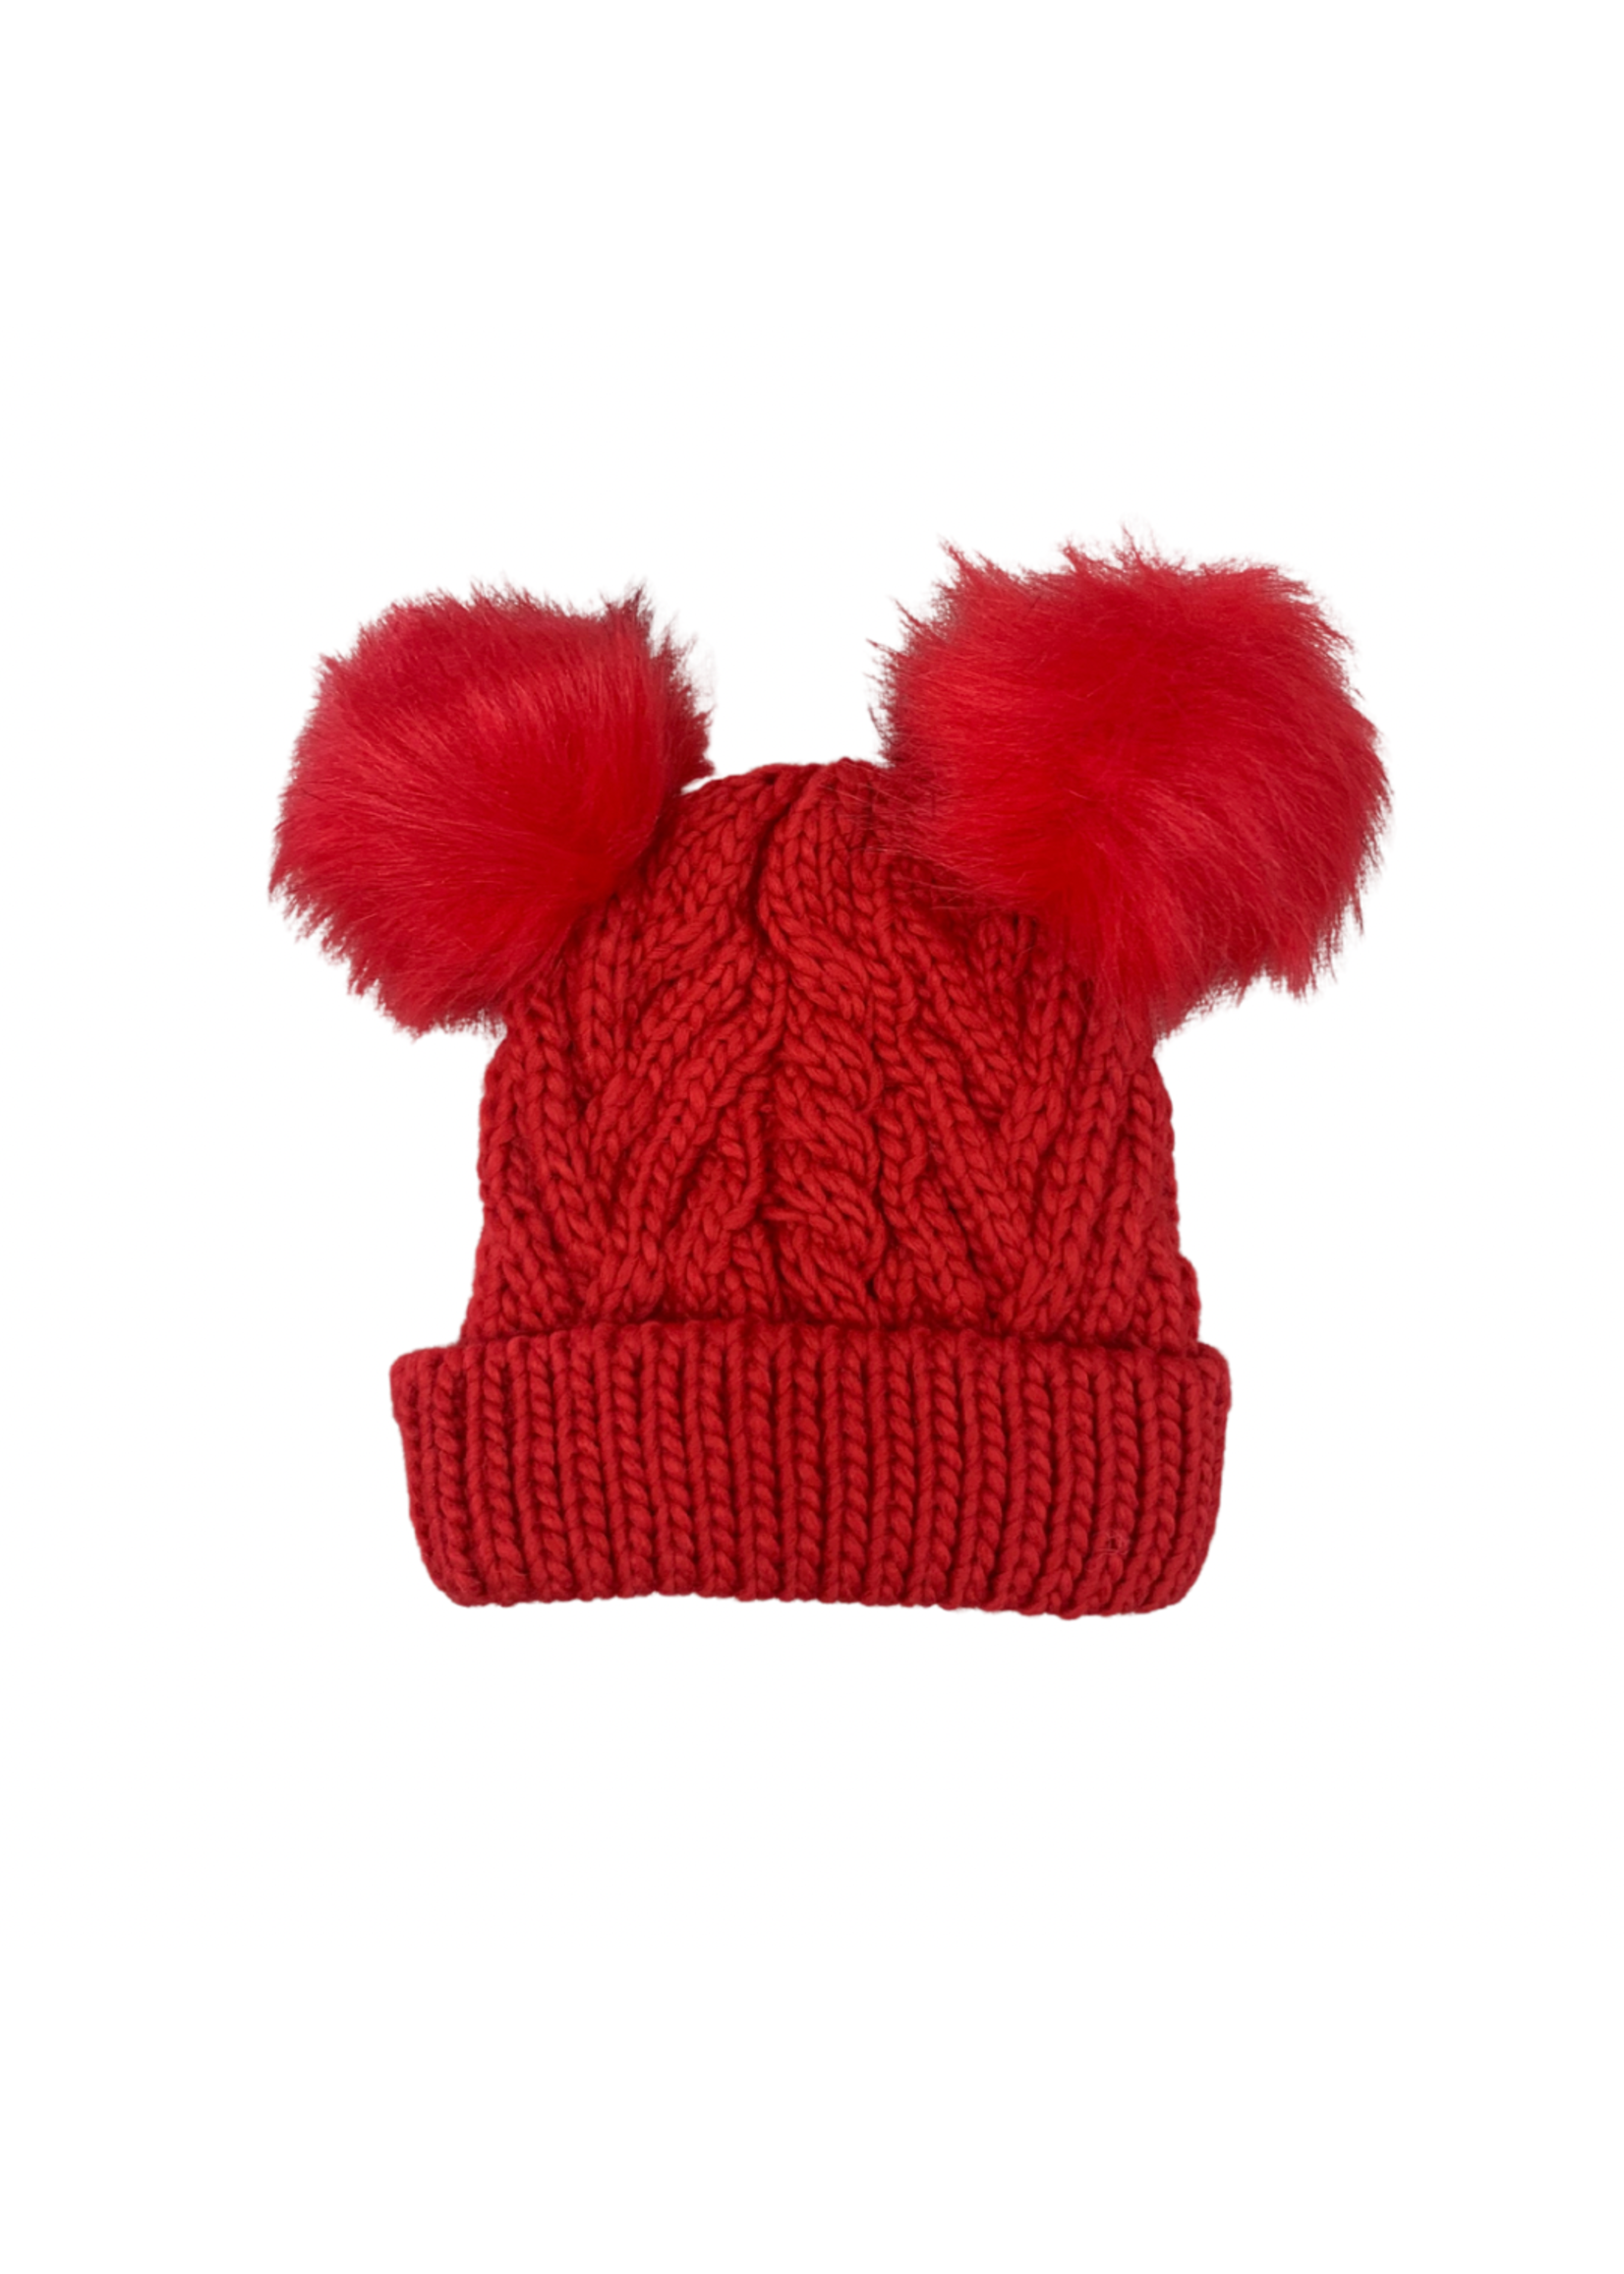 Huggalugs Fluffer Red Cable W/ 2 Pom Poms